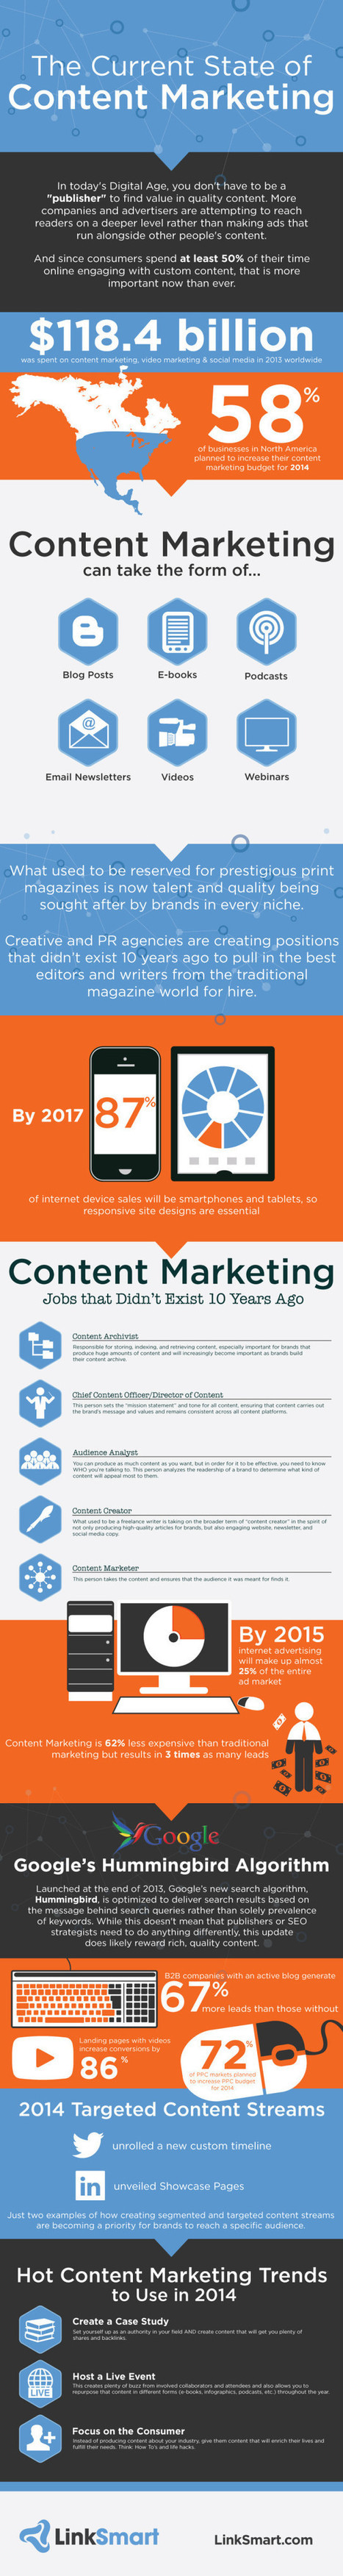 The Current State of Content Marketing 2014 - Marketing Technology Blog | e-commerce & social media | Scoop.it